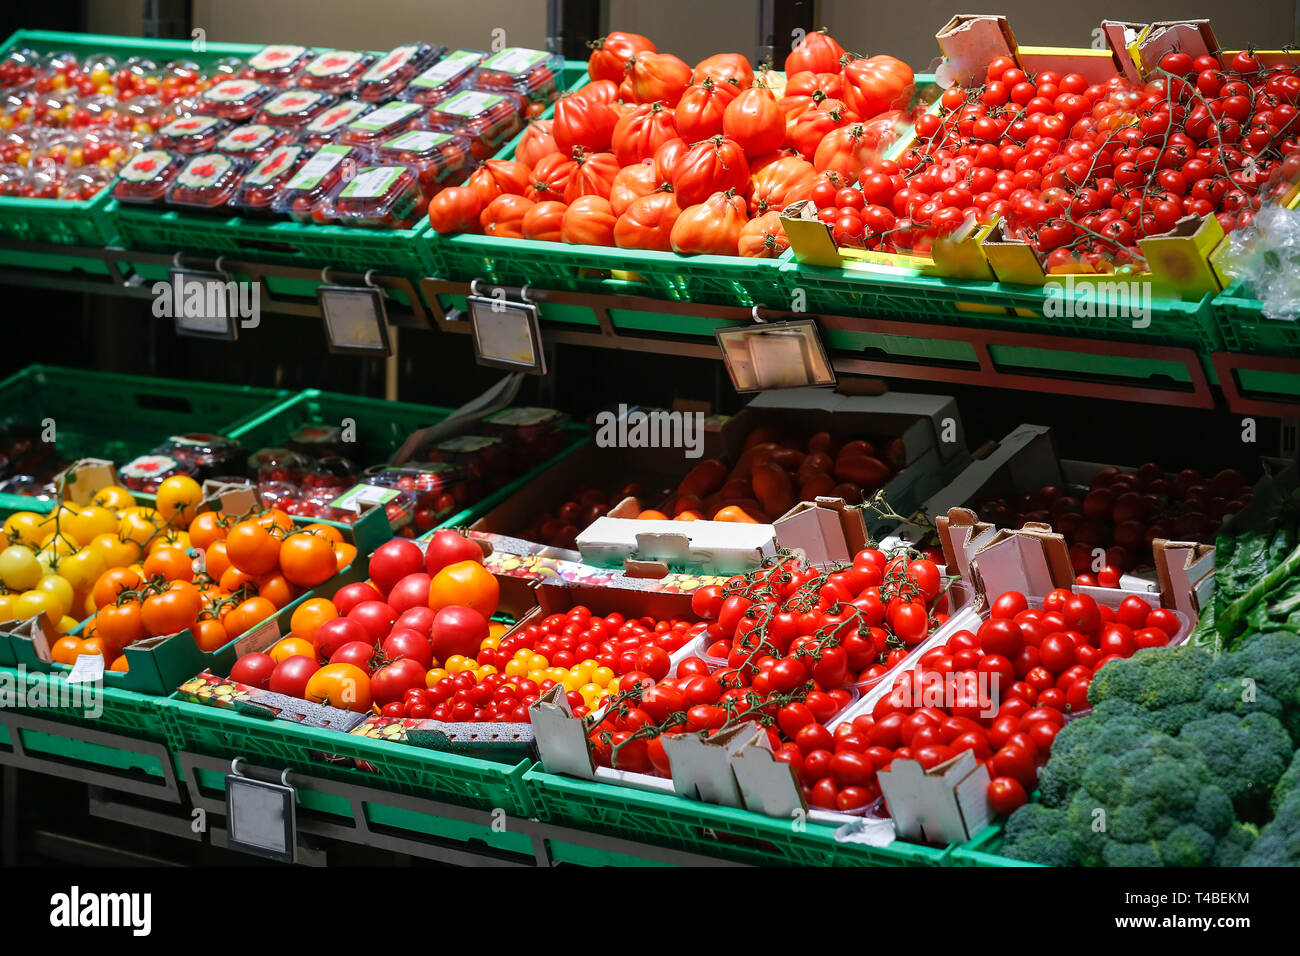 Unpacked, fresh assortment of tomatoes in a self-service supermarket. Zero-waste movement and philosophy, sustainable trade and organic grocery concep - Stock Image